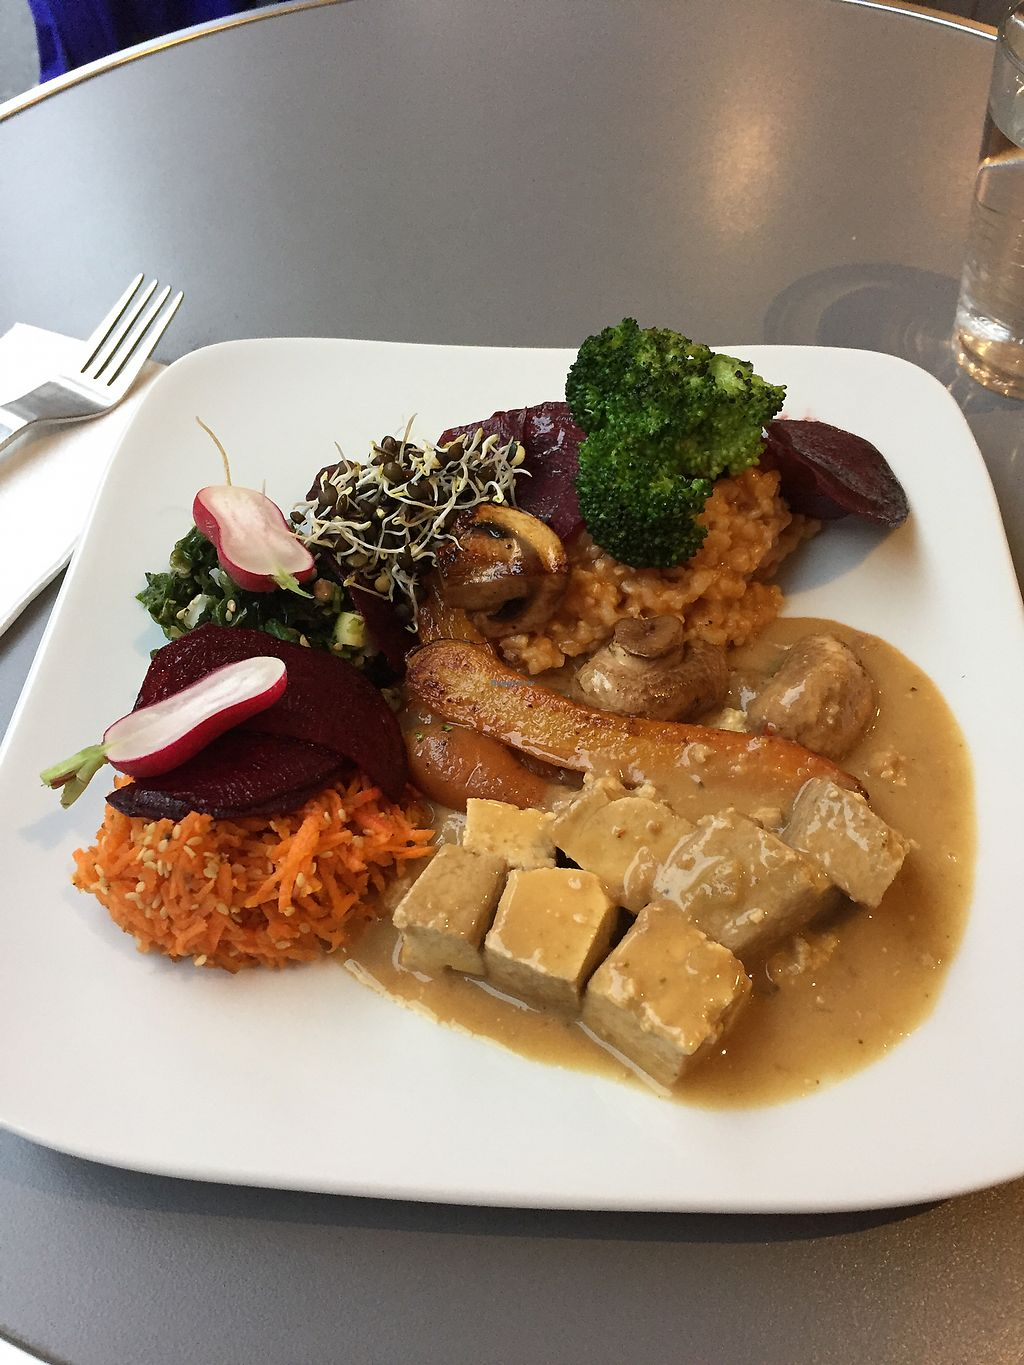 "Photo of Aux Deux Portes Cafe  by <a href=""/members/profile/Veganfoodexplorer"">Veganfoodexplorer</a> <br/>Plat du jour  <br/> January 22, 2018  - <a href='/contact/abuse/image/35778/349795'>Report</a>"